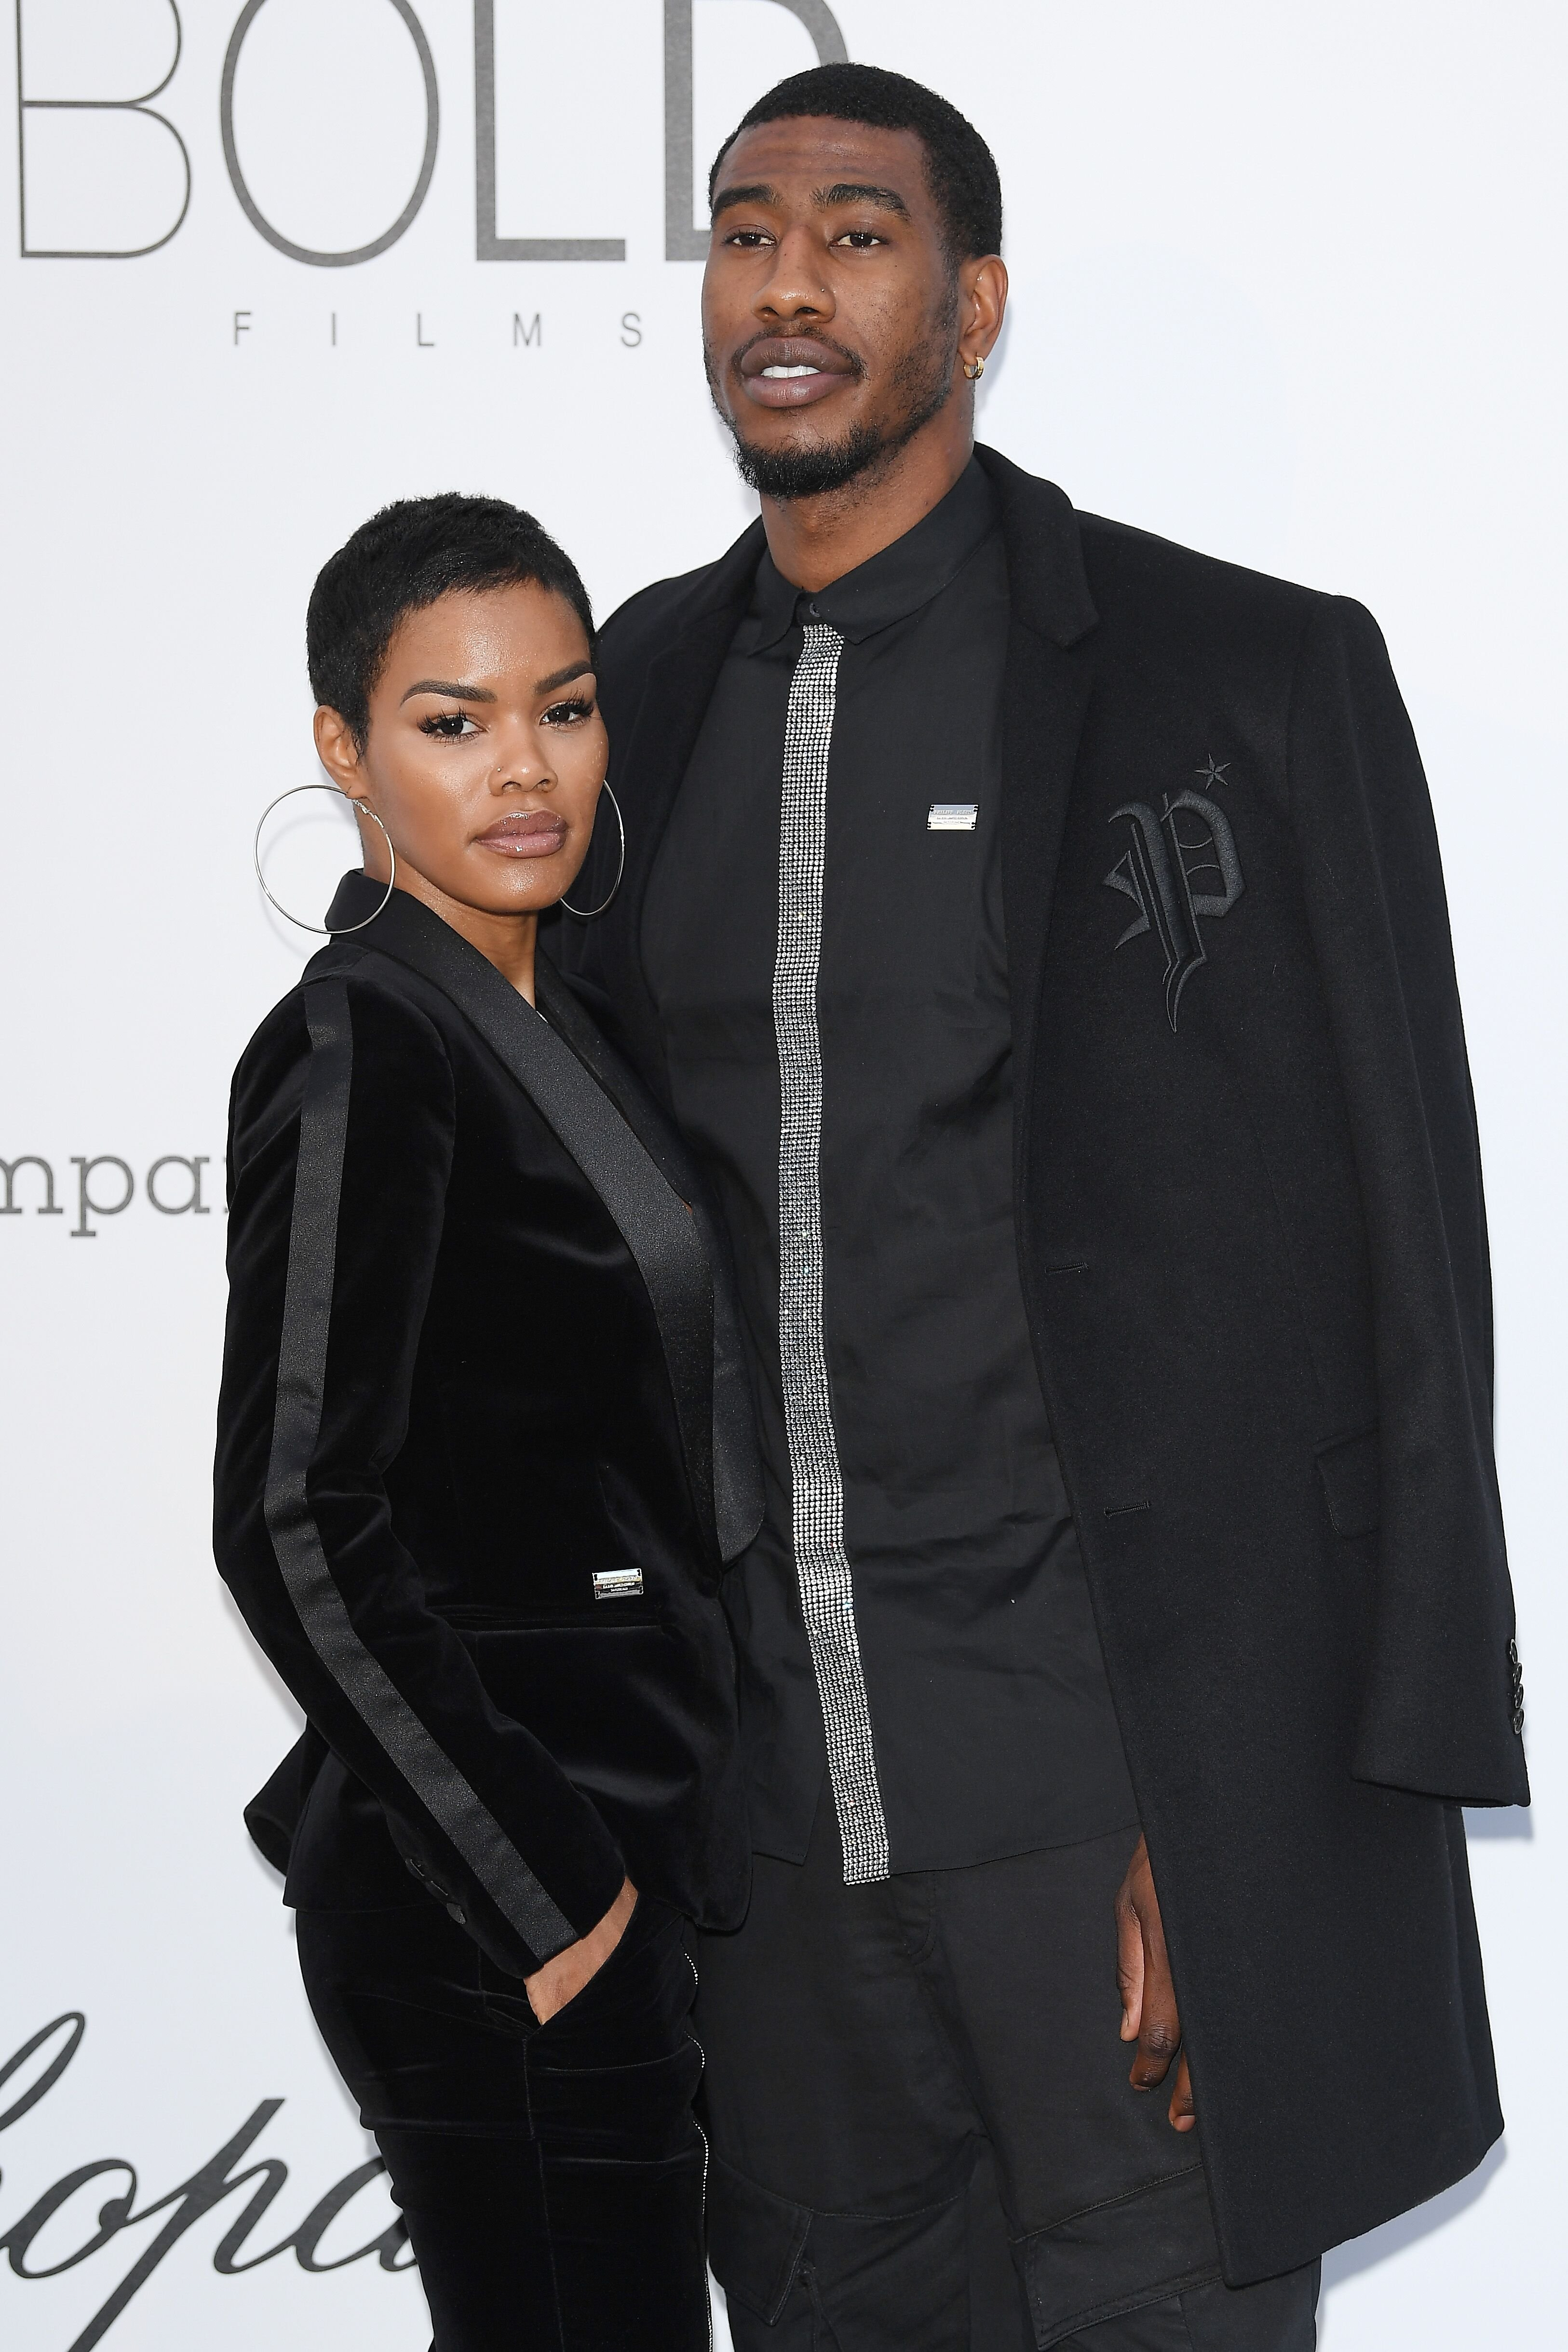 Teyana Taylor and Iman Shumpert arrive at the amfAR Gala Cannes 2018 at Hotel du Cap-Eden-Roc on May 17, 2018 | Photo: Getty Images